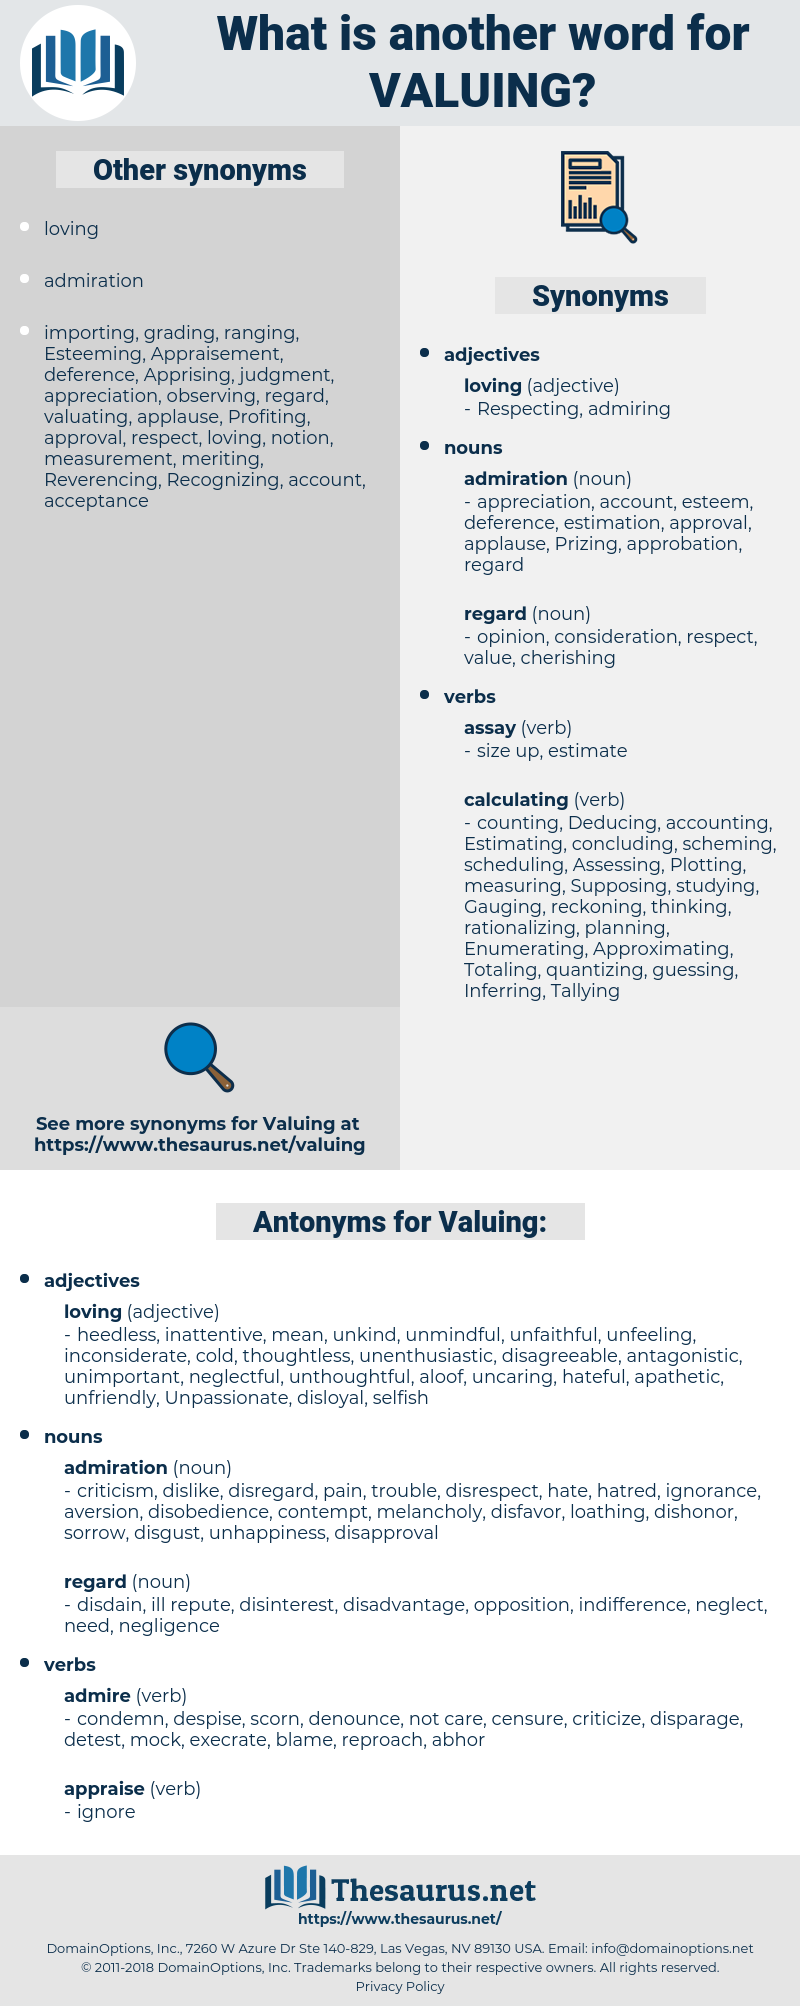 Valuing, synonym Valuing, another word for Valuing, words like Valuing, thesaurus Valuing